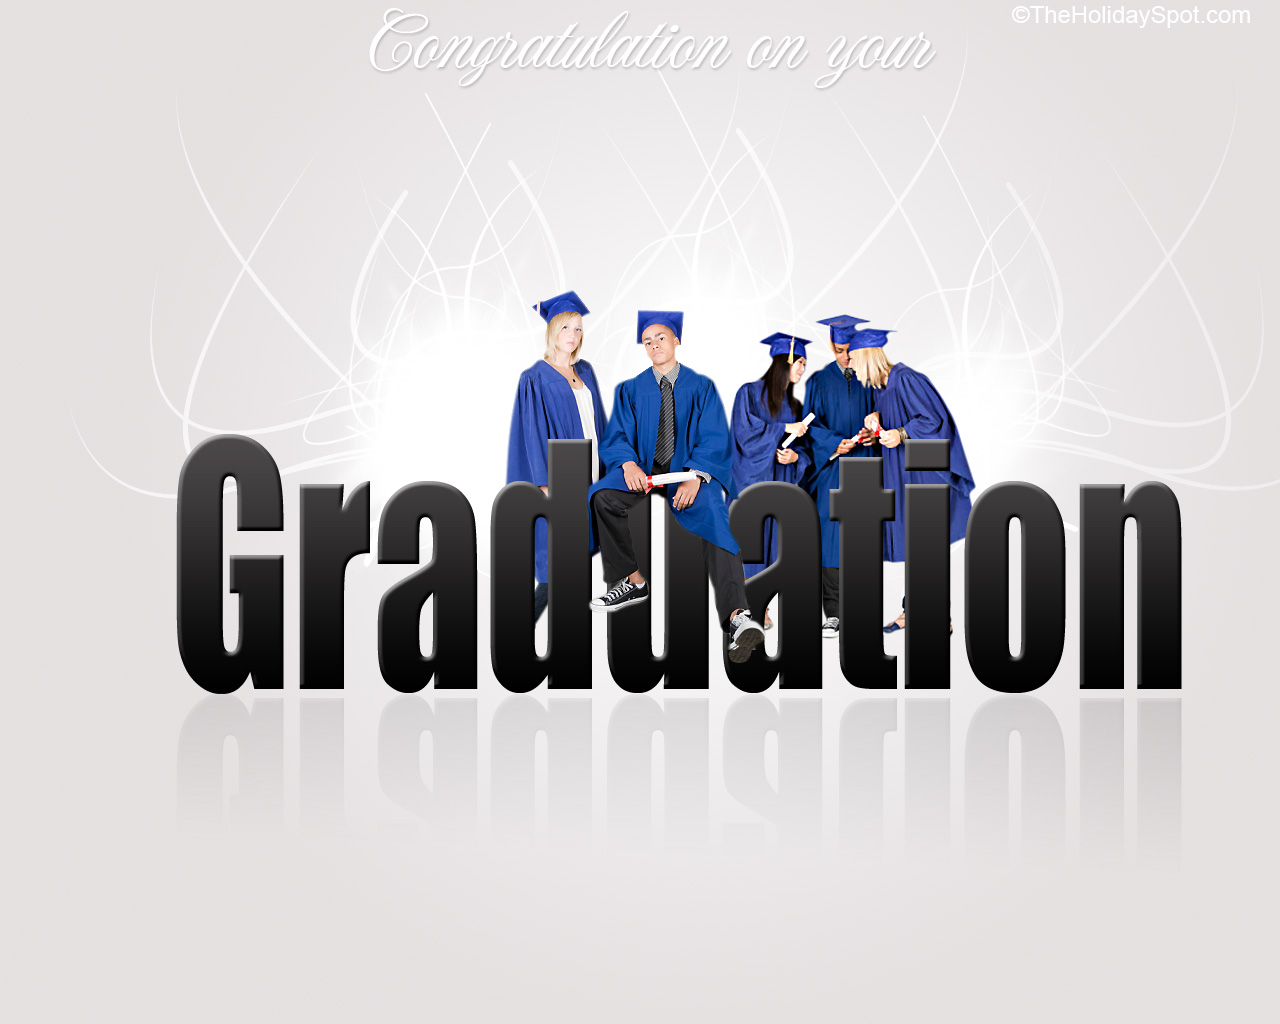 High school graduation images - 150.7KB